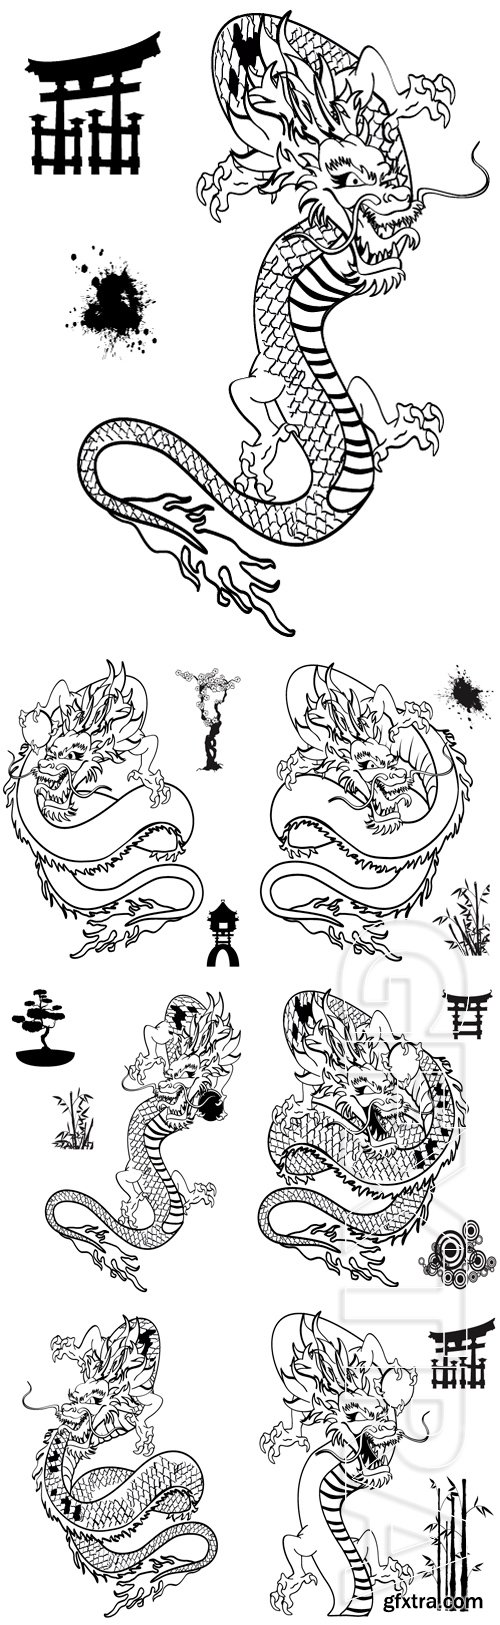 Stock Vectors - Japanese dragon tattoo in vector format very easy to edit